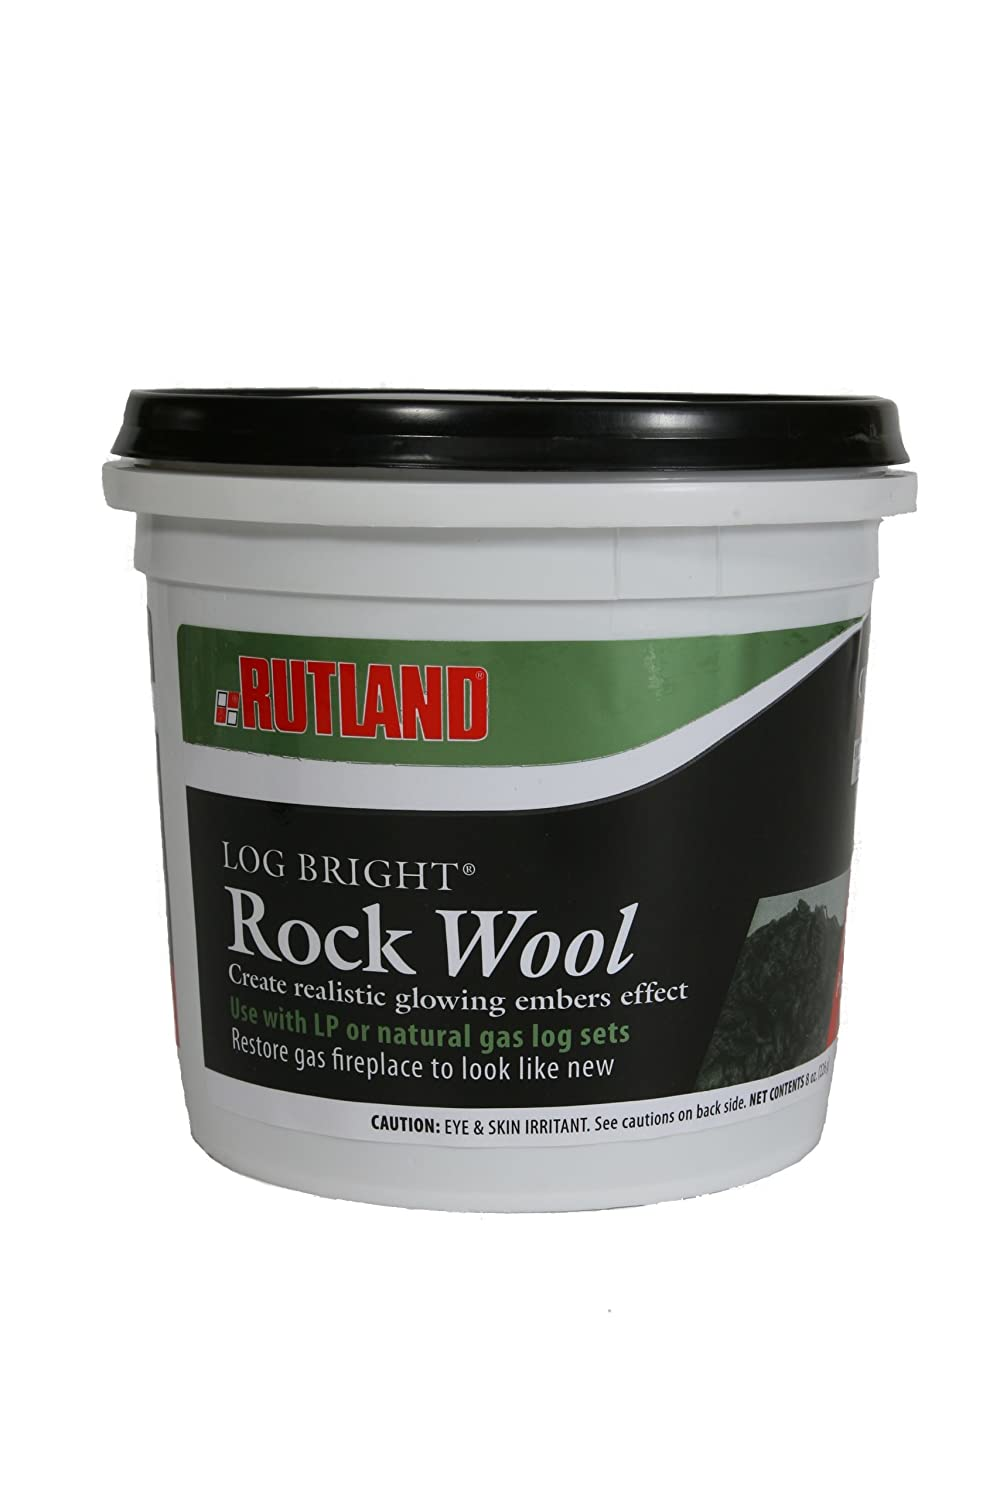 Amazon.com: Rutland 587 Bright Rock Wool for Gas Log: Home & Kitchen